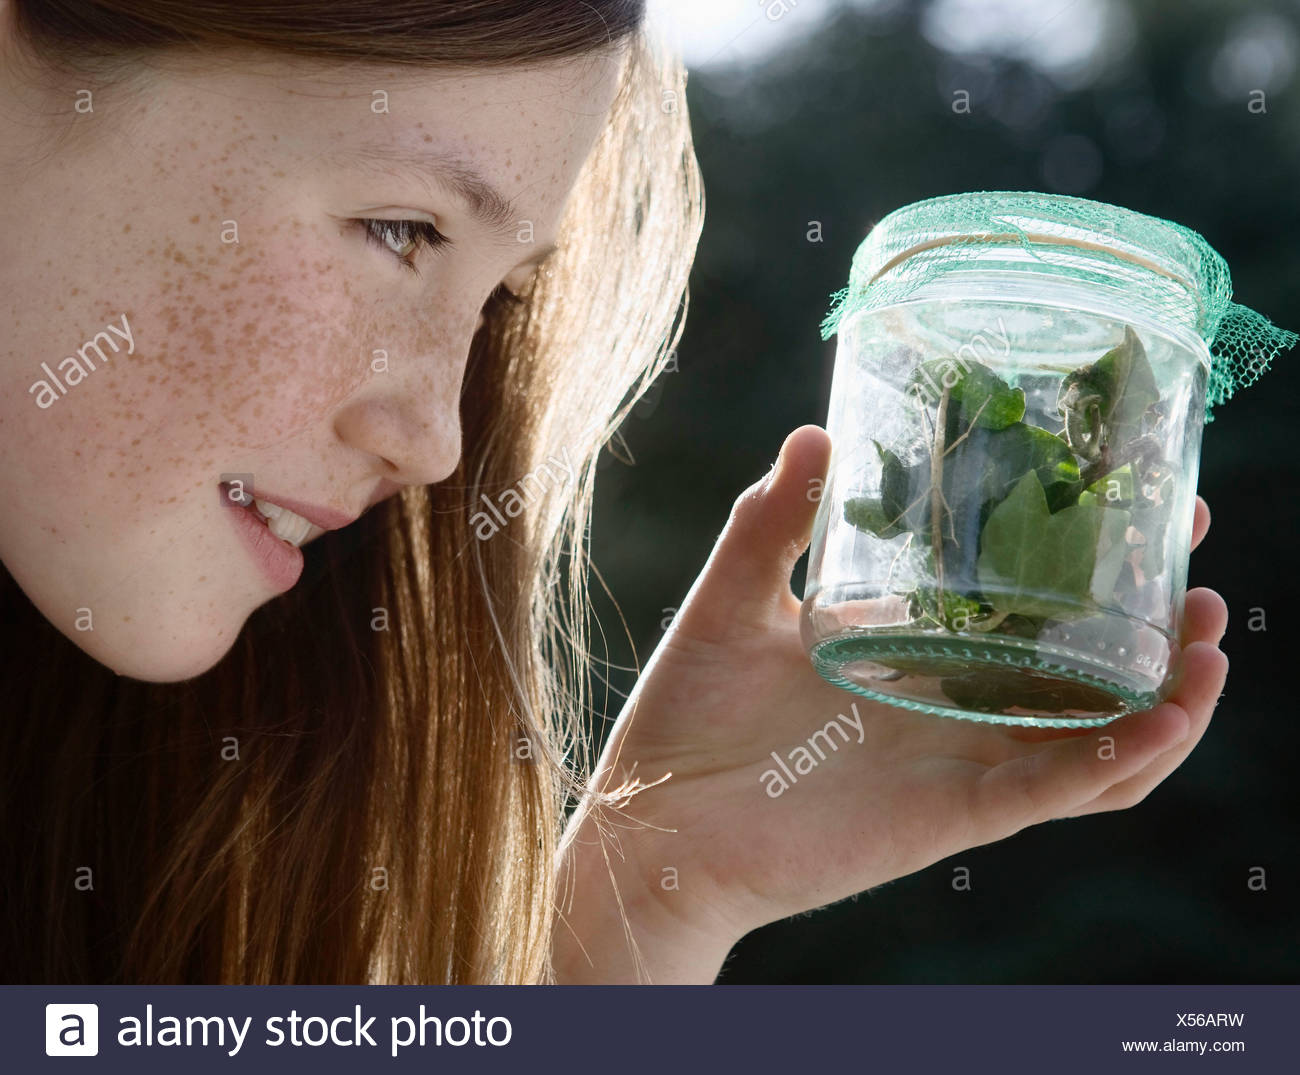 Girl holding jar of insects - Stock Image